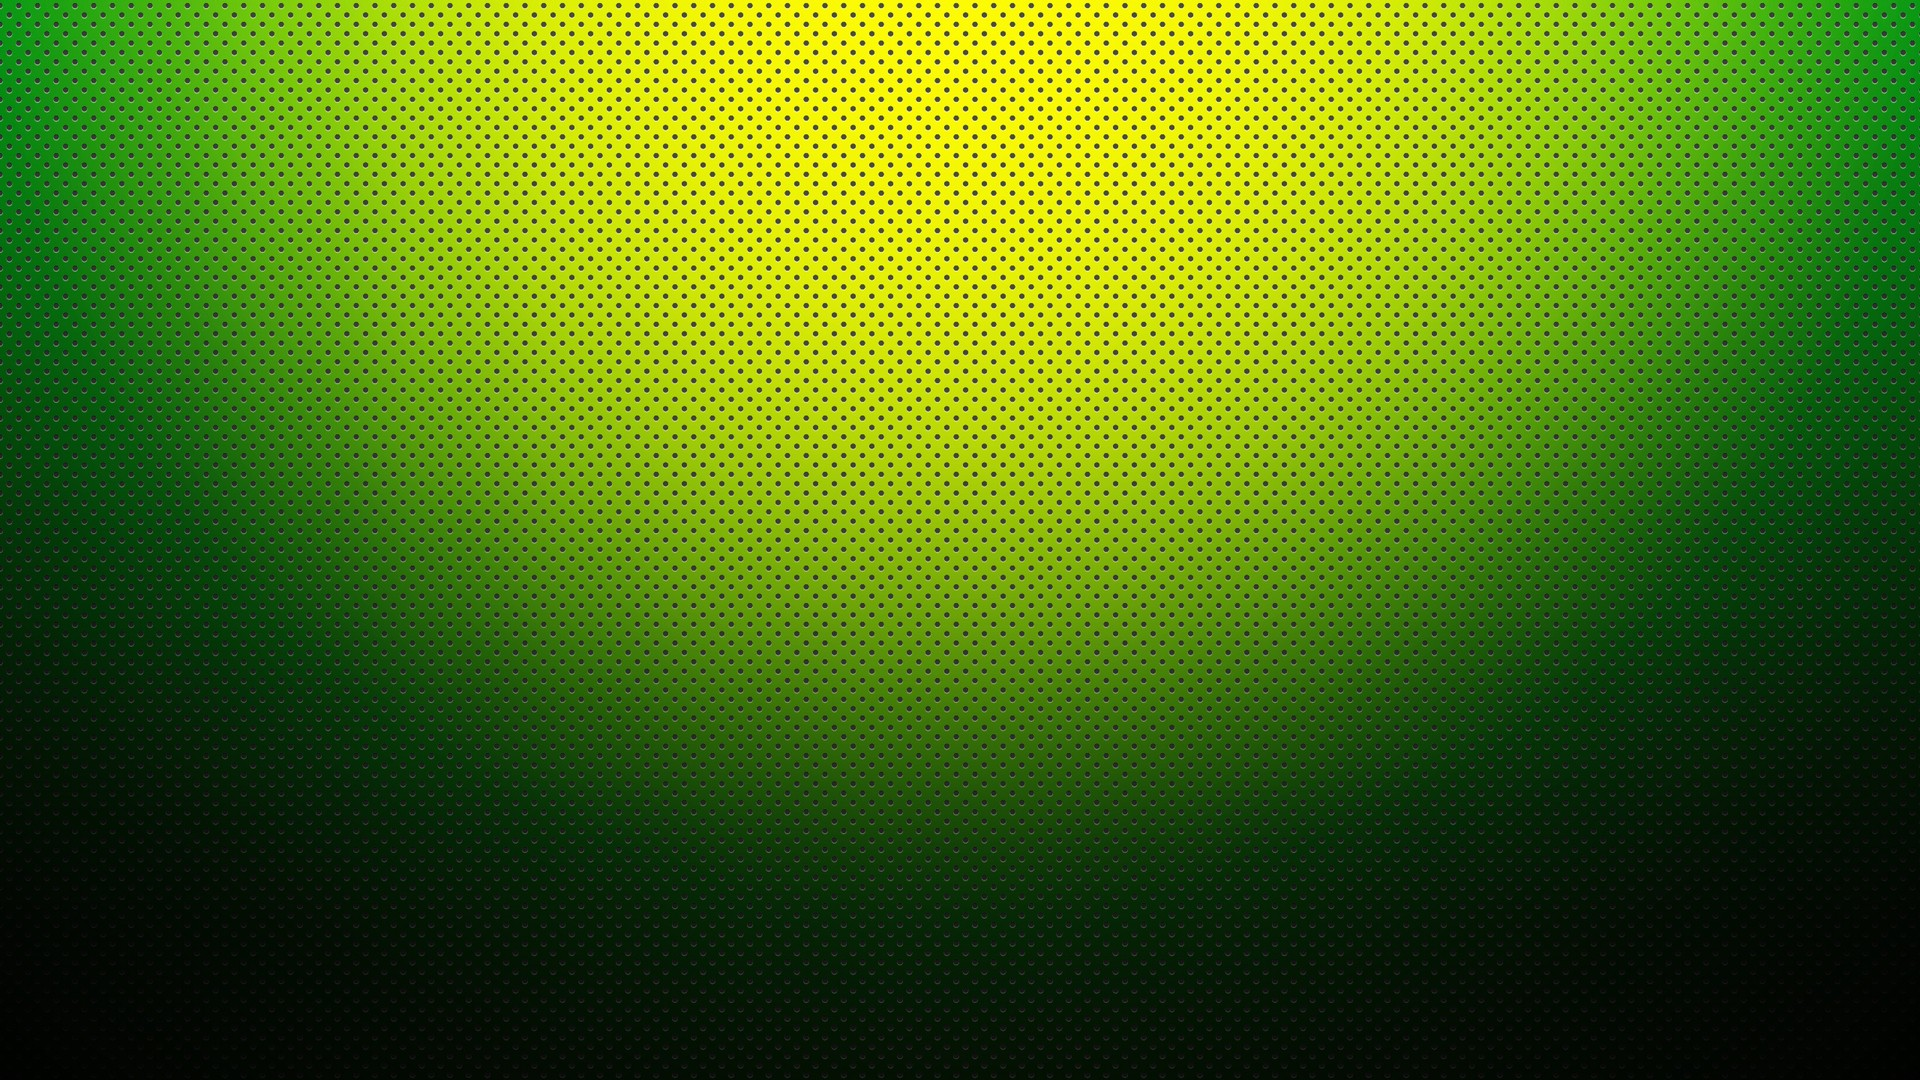 3d Wallpaper 800x1280 Green Leather Background Hd Artist 4k Wallpapers Images